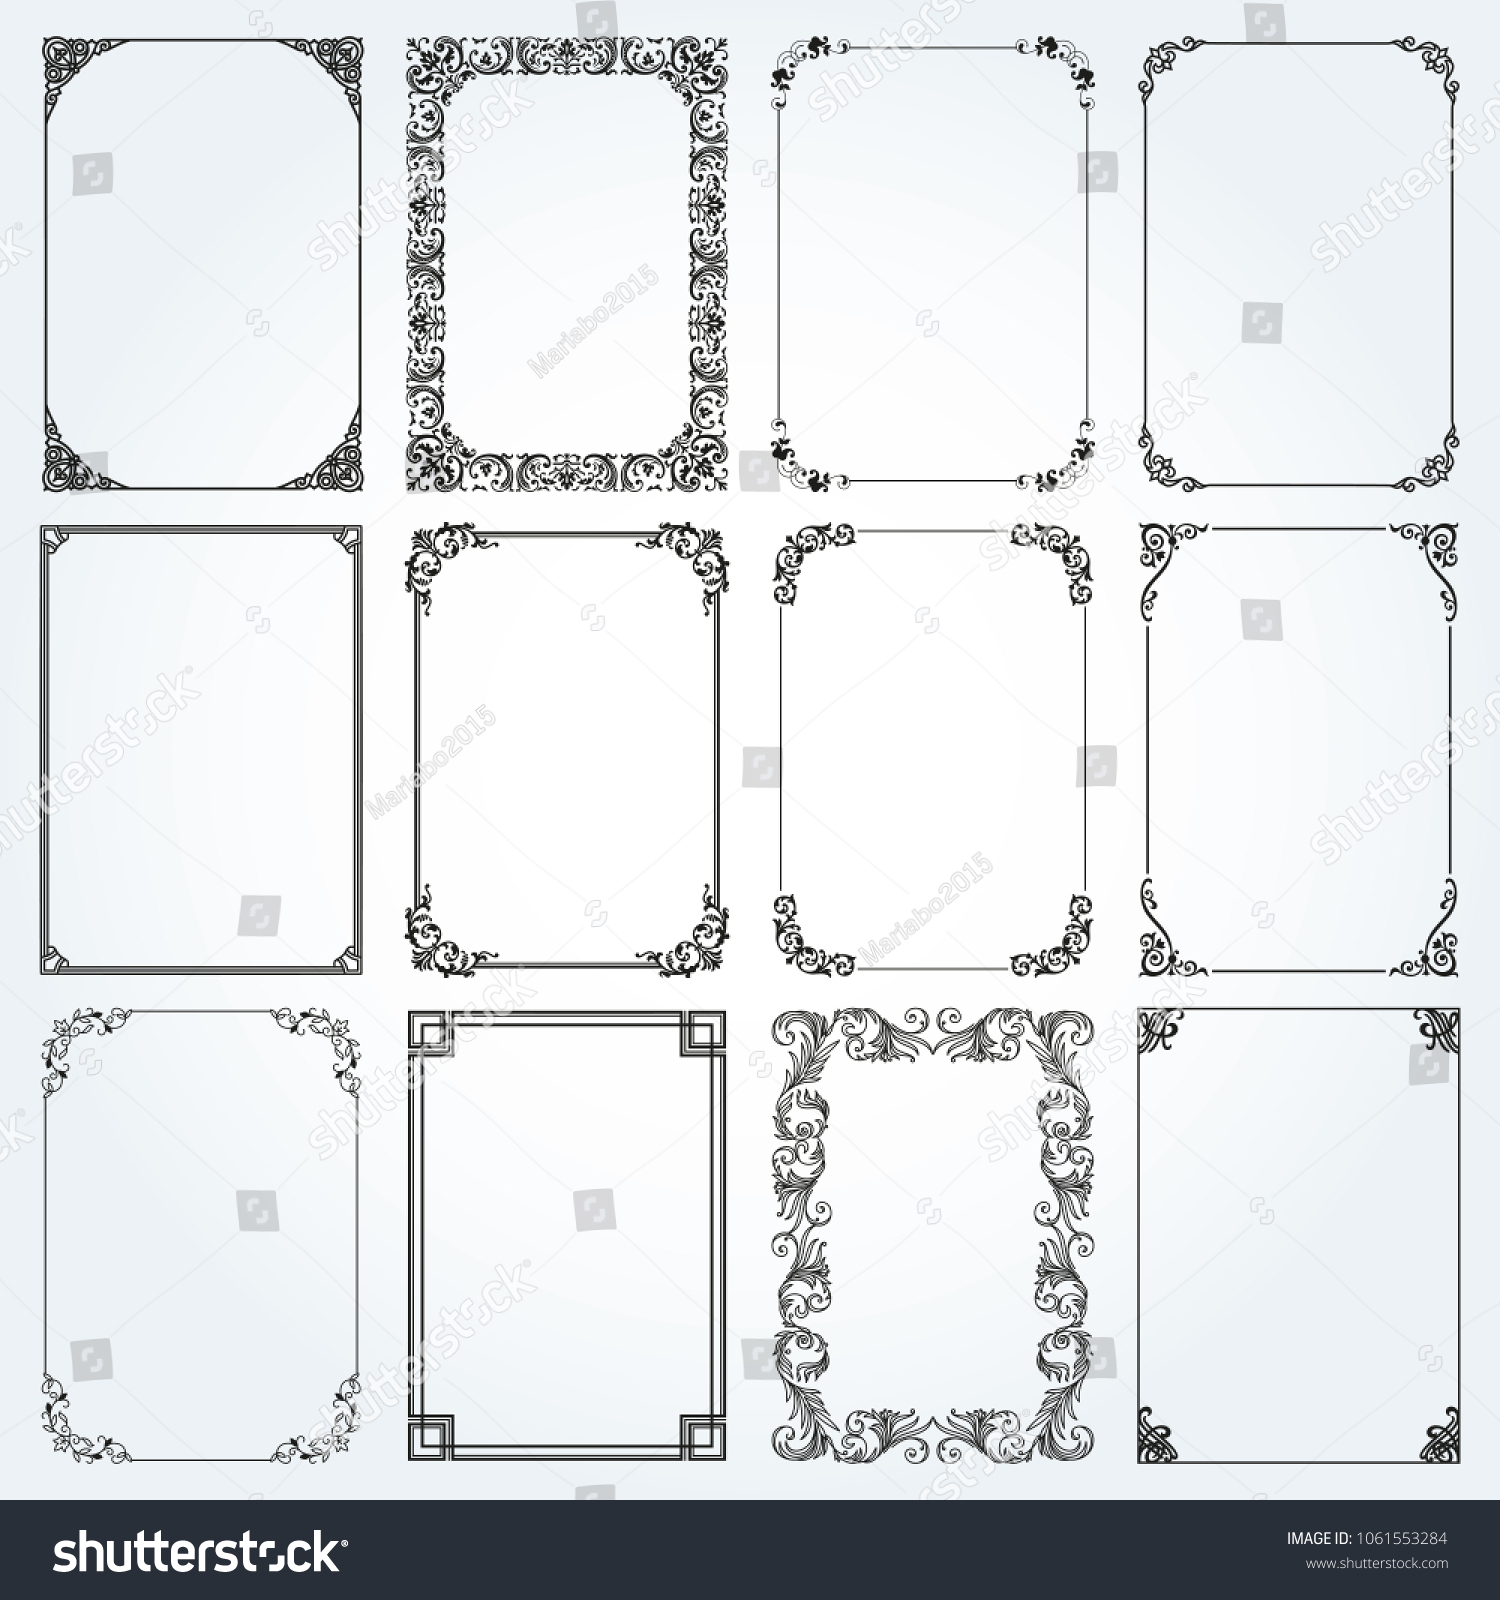 Decorative Frames Borders Standard Rectangle Proportions Stock ...